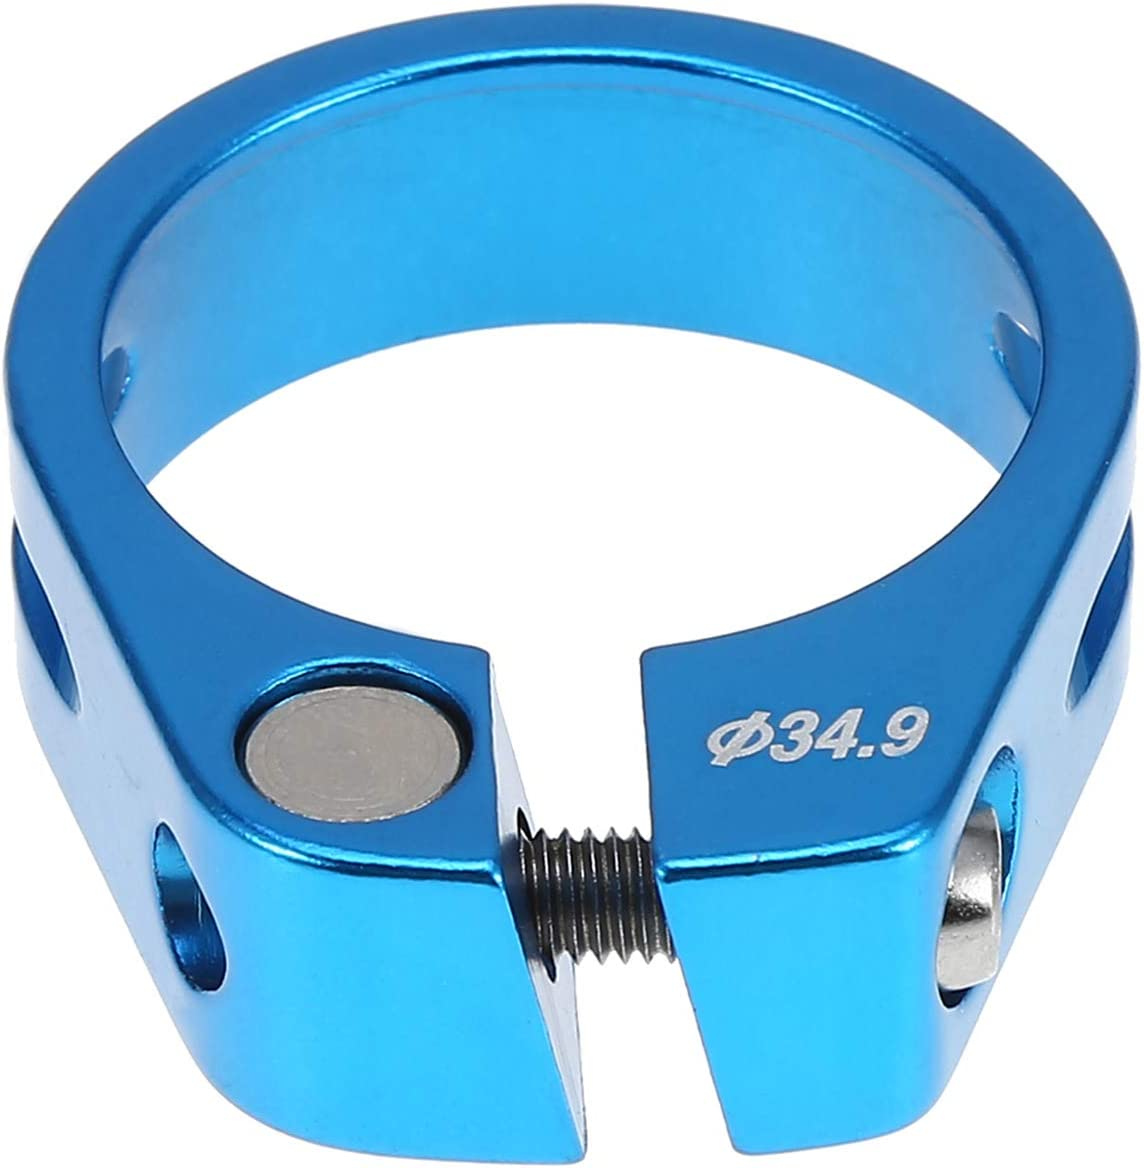 Rehomy 34.9mm Aluminum Alloy Bicycle Seat Post Clamp Mountain Bike Seatpost Accessory Blue